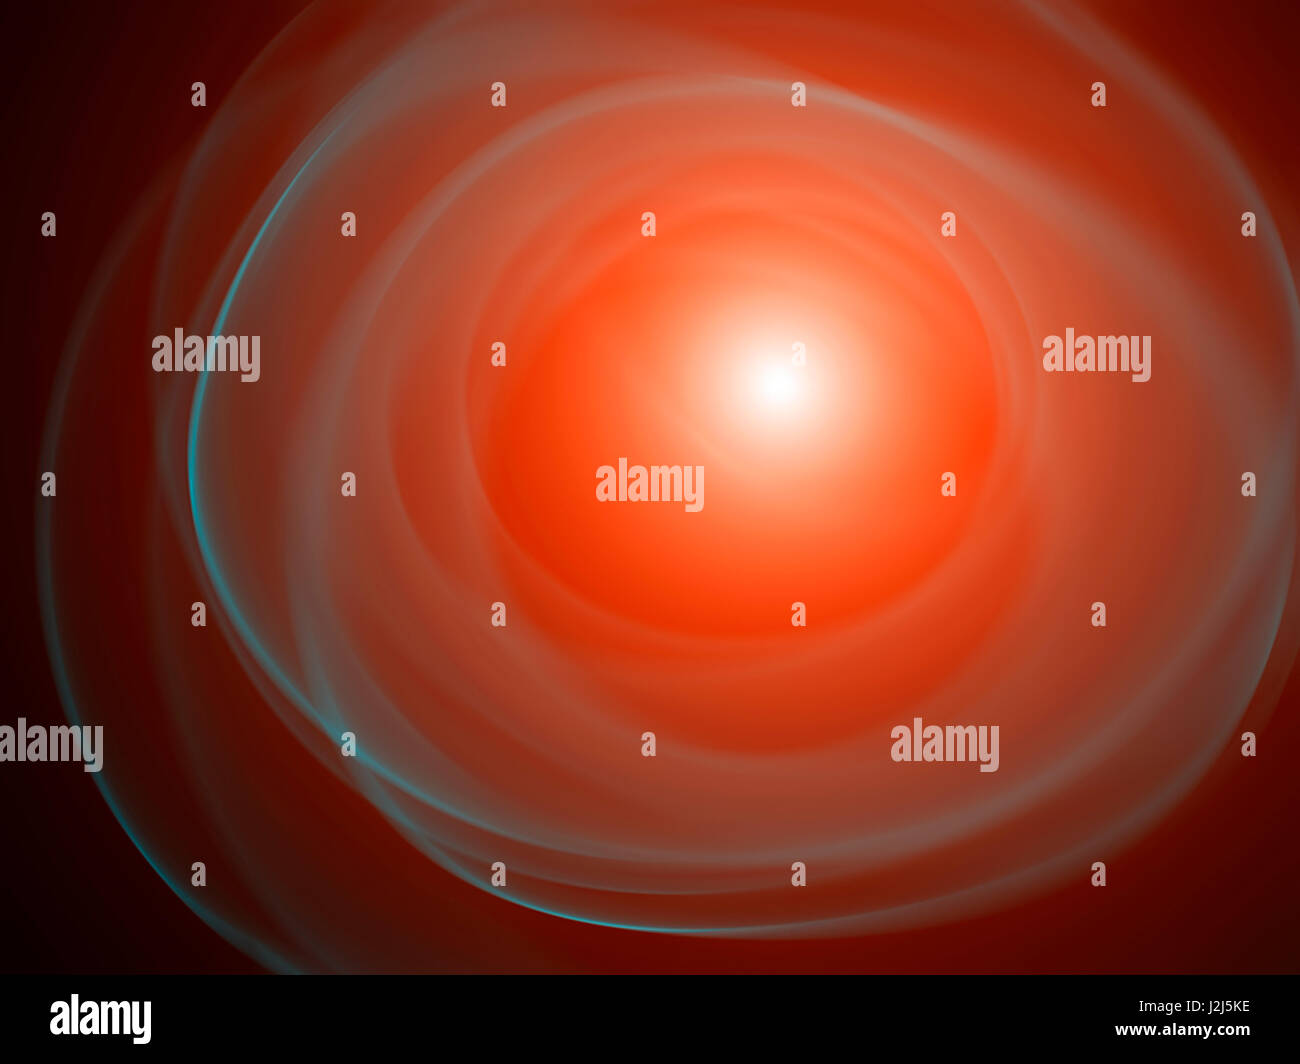 Bright red abstract shapes, illustration. - Stock Image